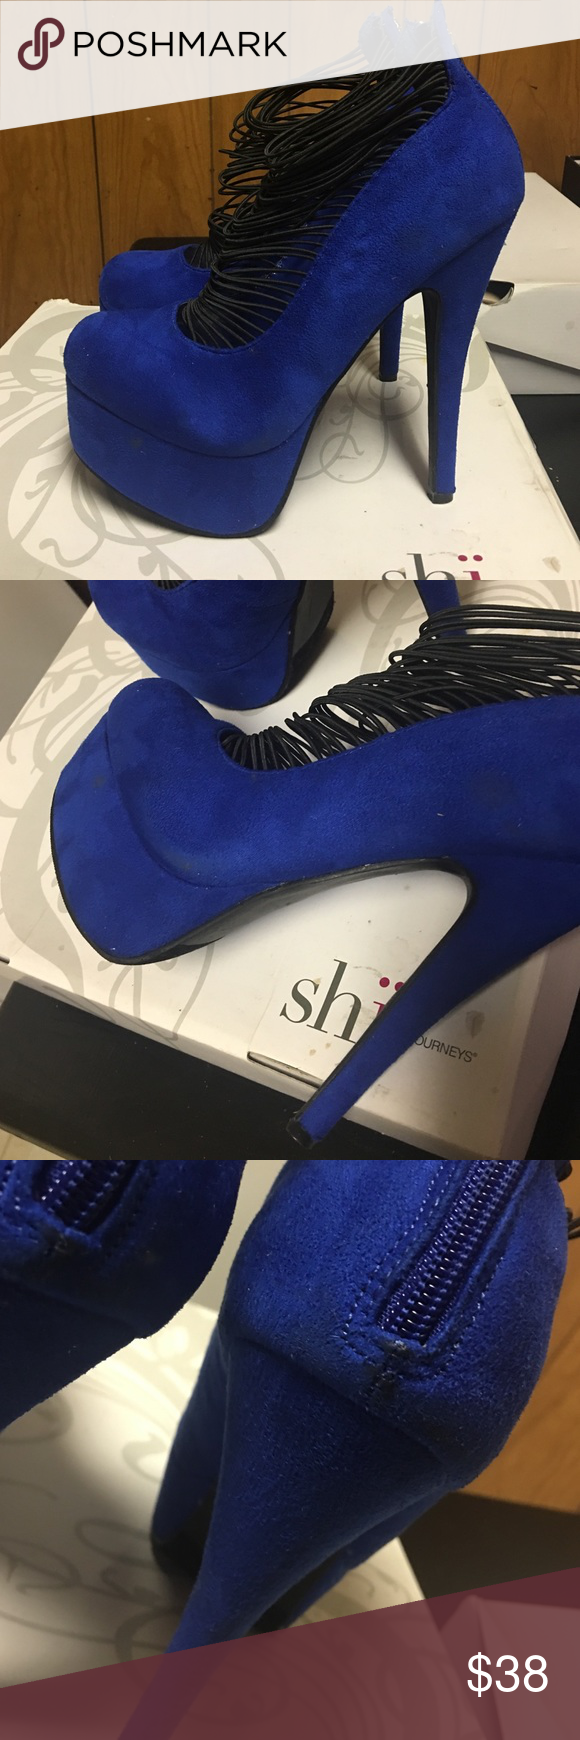 Blue Suede Platform Heels Pre owned, worn once. Shoes do have minor scuff marks. This shoe is super comfortable. The black string straps are stretchy so they adjust to your foot. SHI by Journeys Shoes Heels